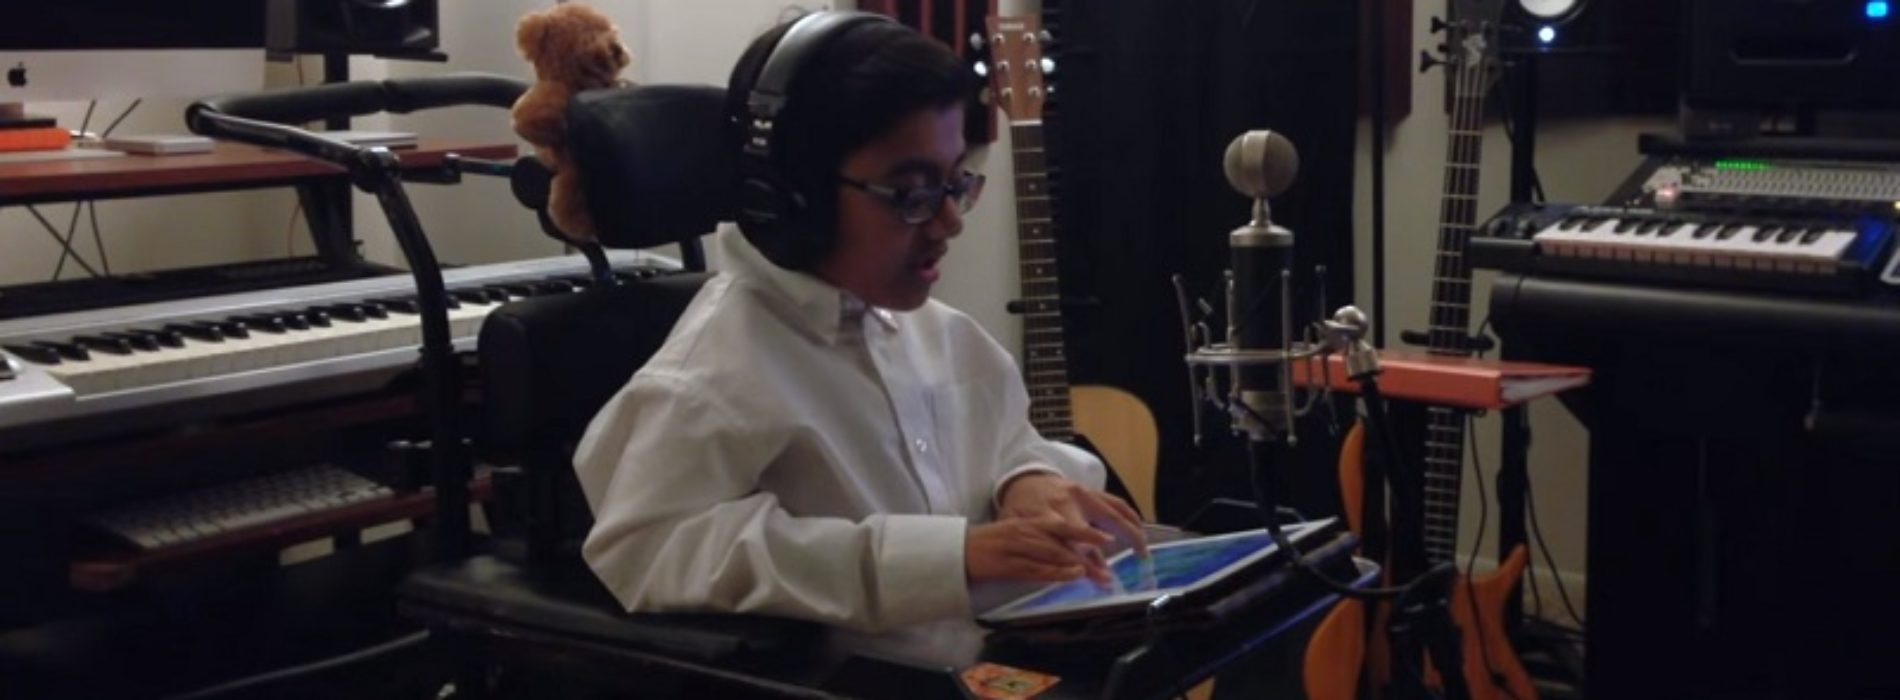 Sparsh Shah: the 15-year-old rapper with brittle bones